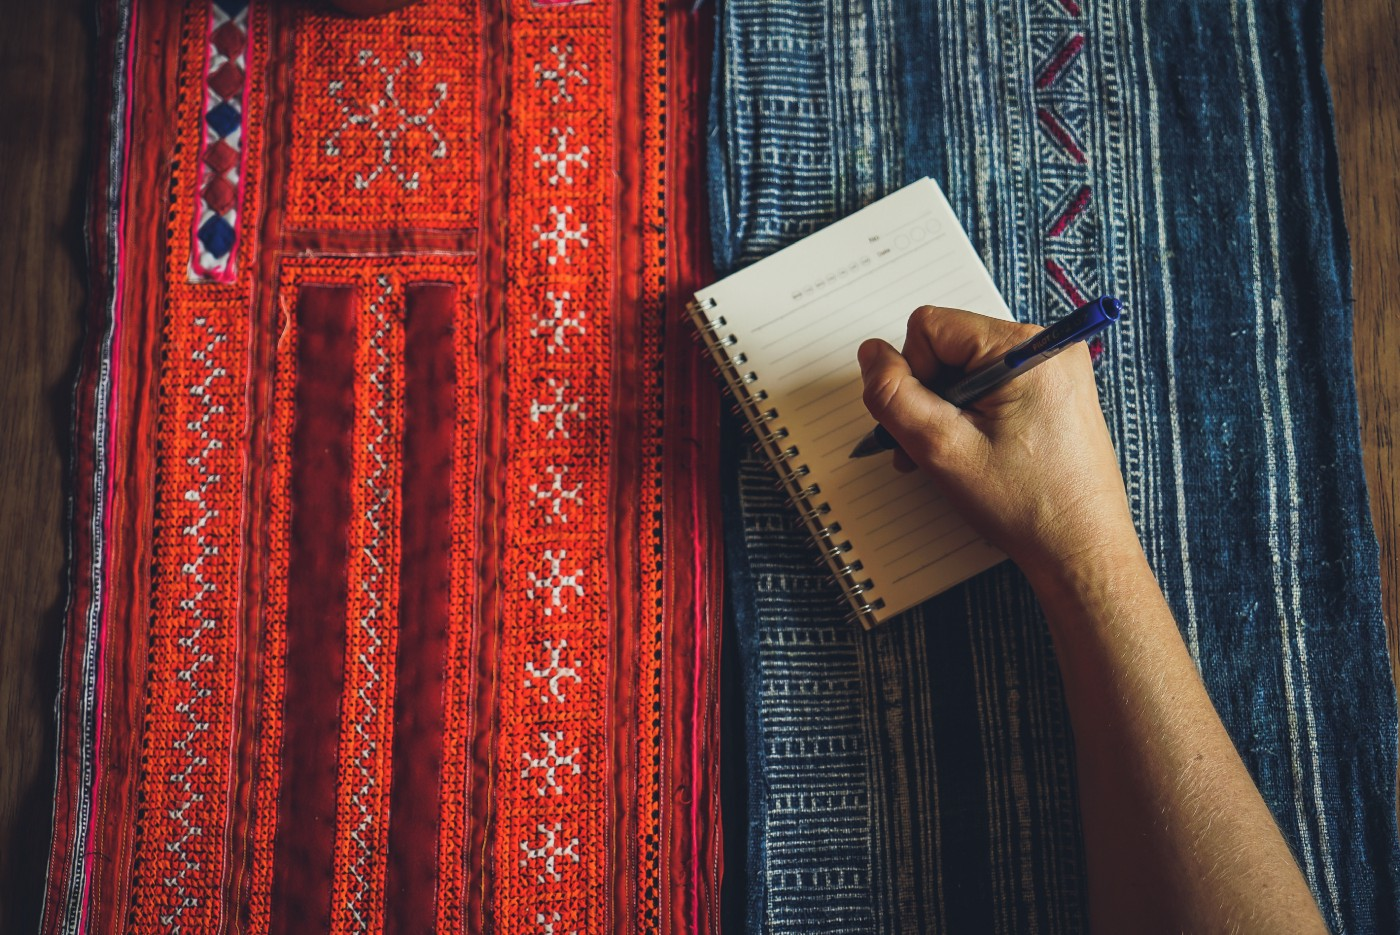 A man's hand holding a pen, about to write in a small notebook that's resting on red and blue woven & embroidered fabric